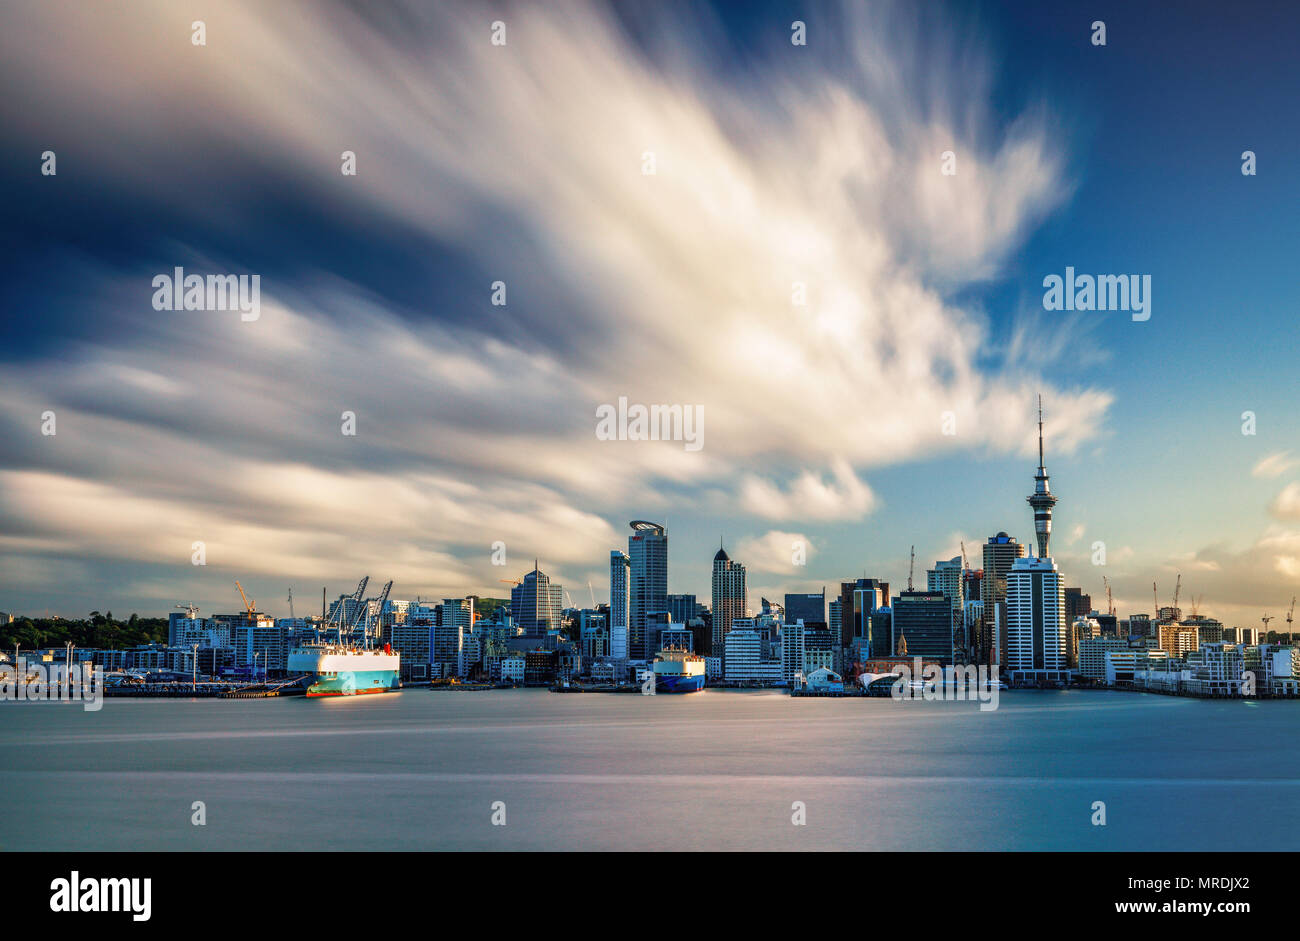 The view of Auckland City from Davenport, New Zealand. - Stock Image